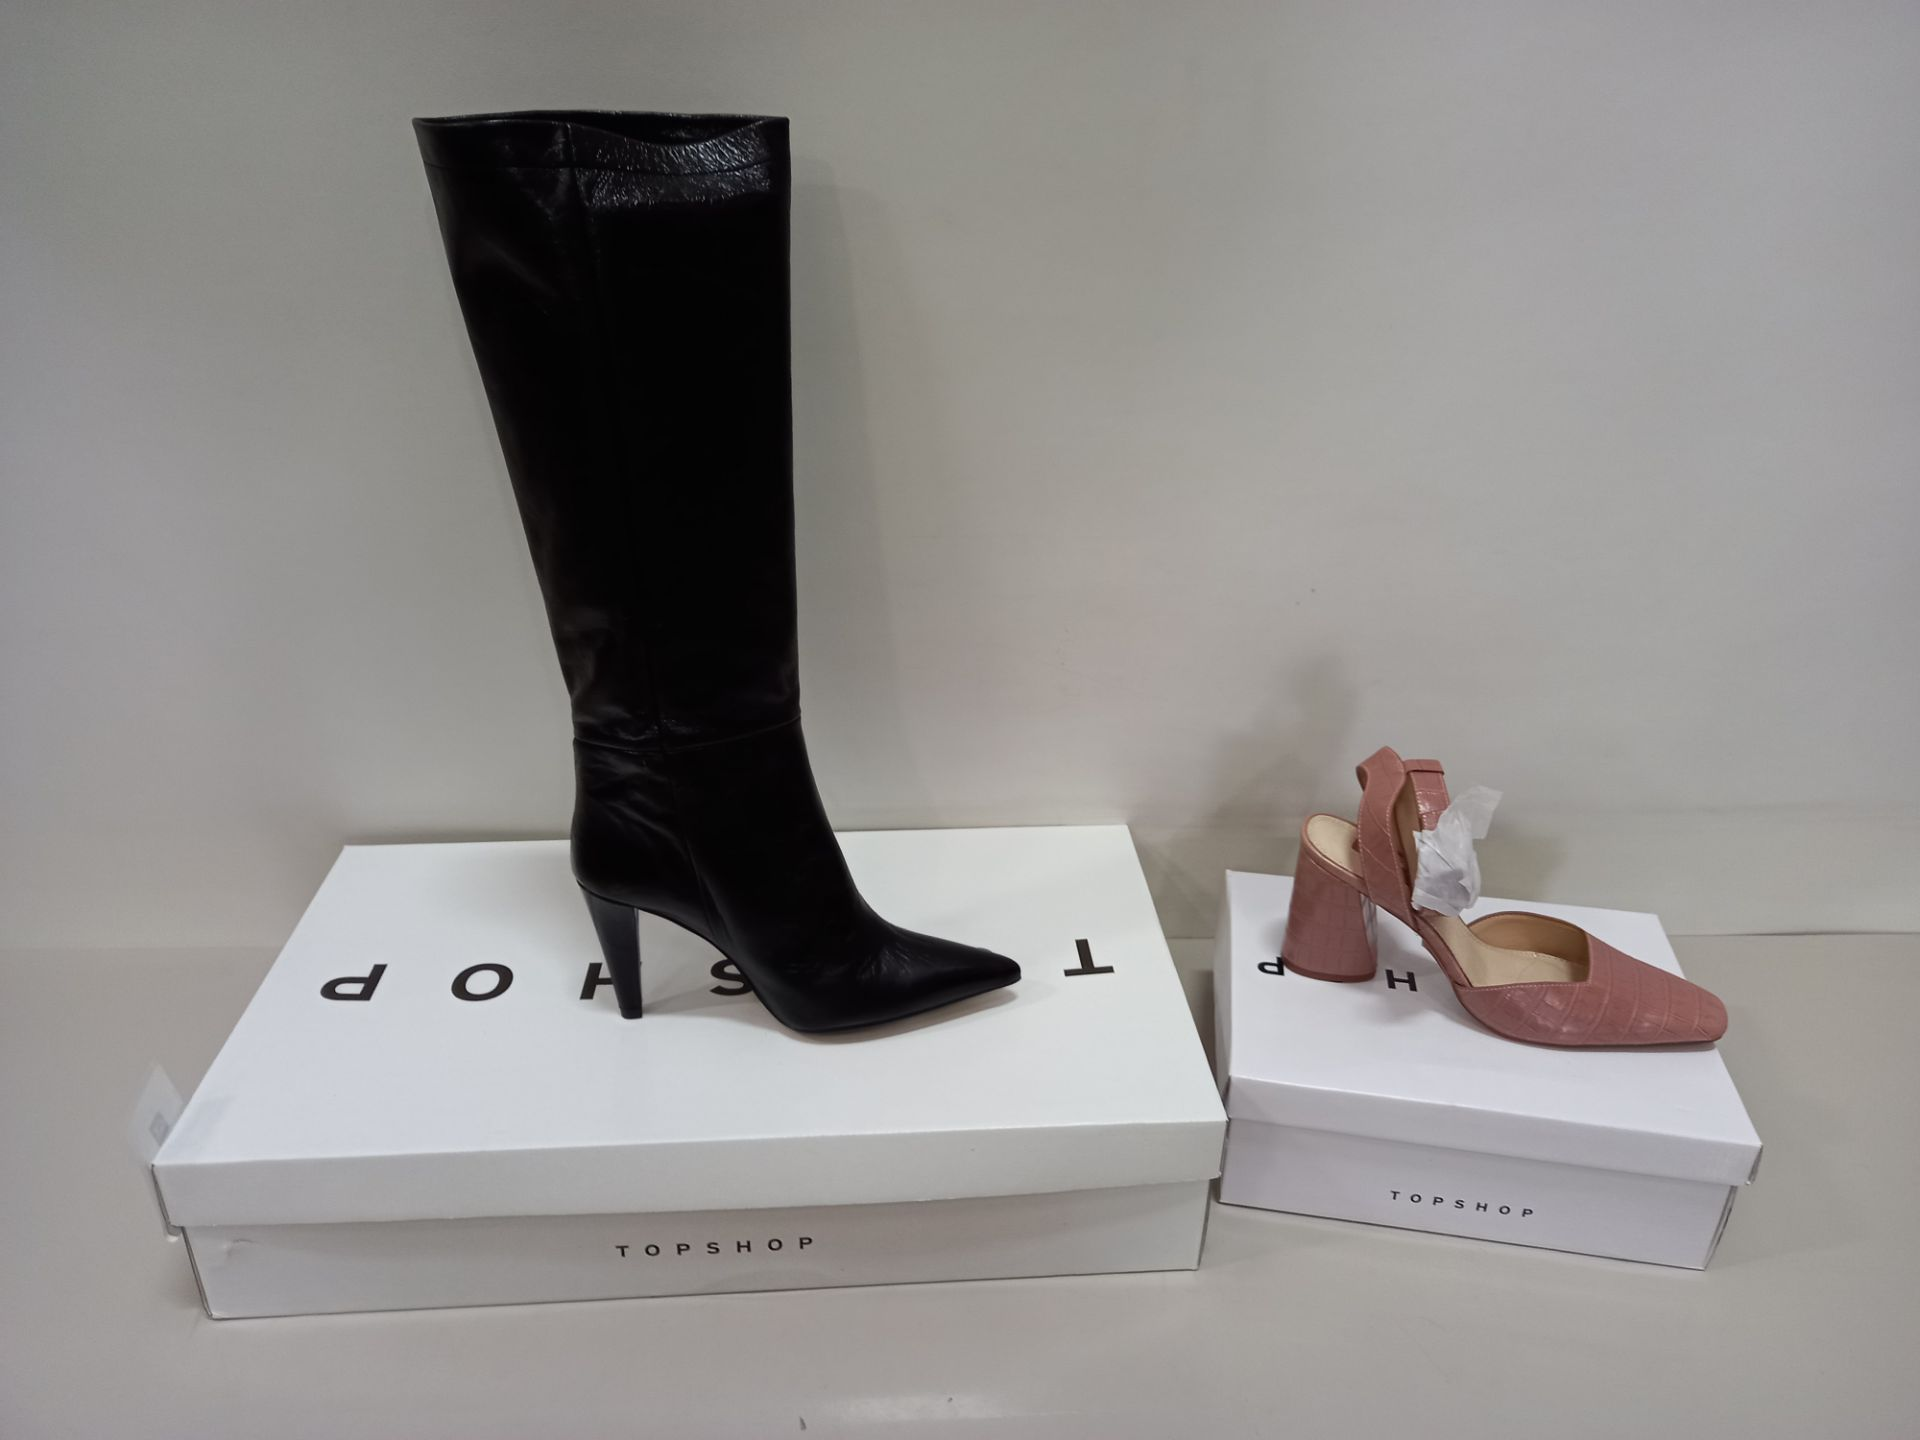 5 X BRAND NEW TOPSHOP SHOES - 3 X TAYLOR BLACK SHOES UK SIZE 6 RRP £120.00 AND 2 X GAZE PINK SHOES